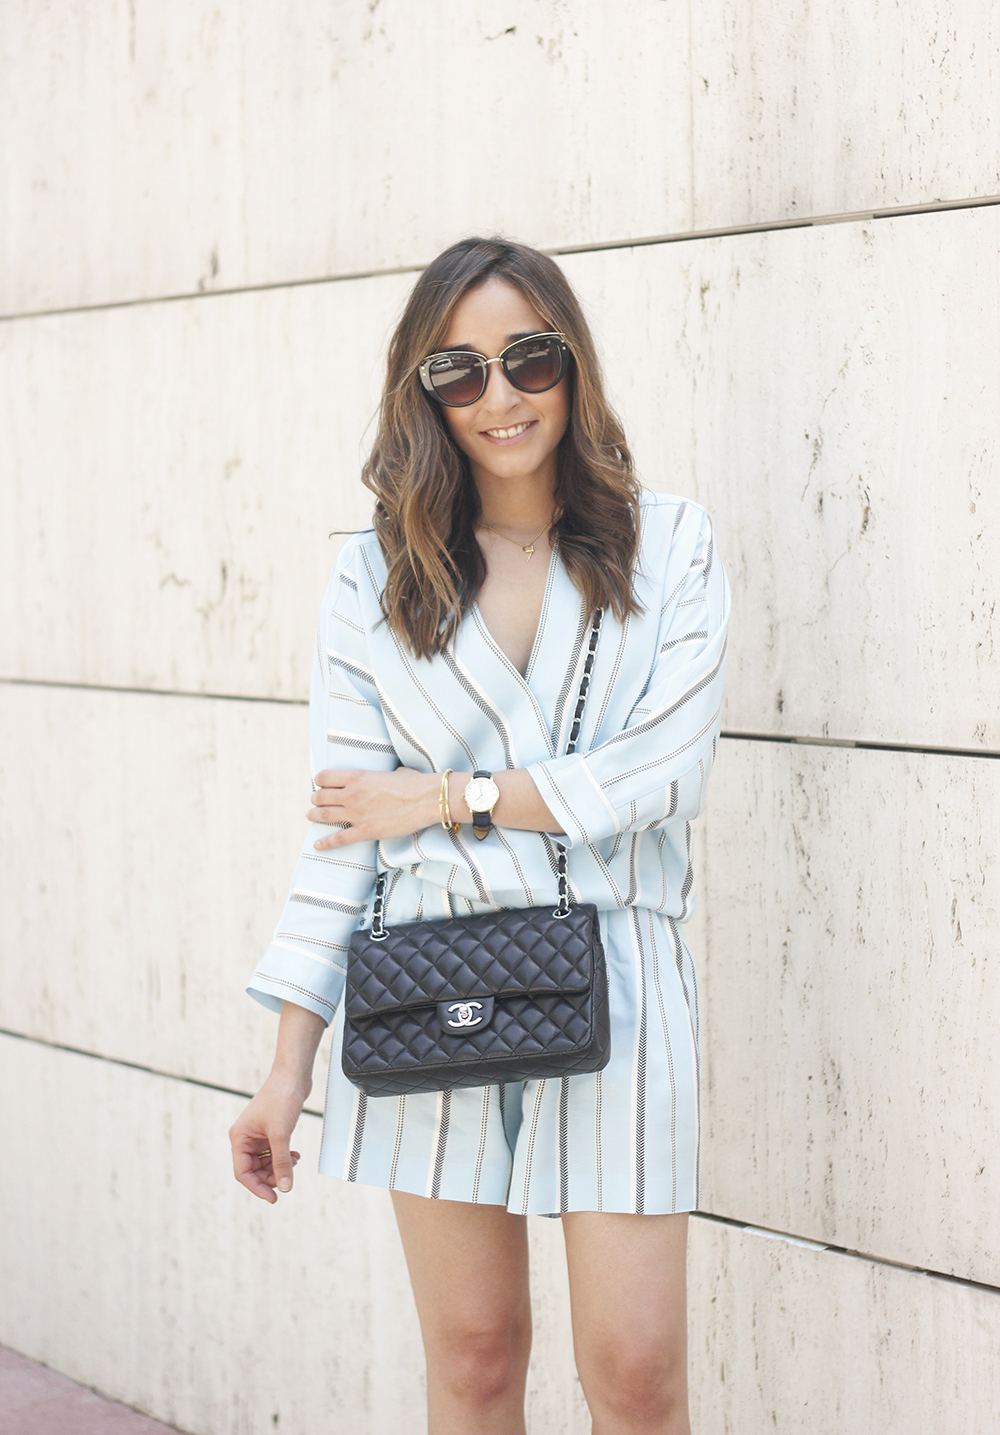 Maje Jumpsuit with stripes black heels chanel bag summer outfit street style fashion10